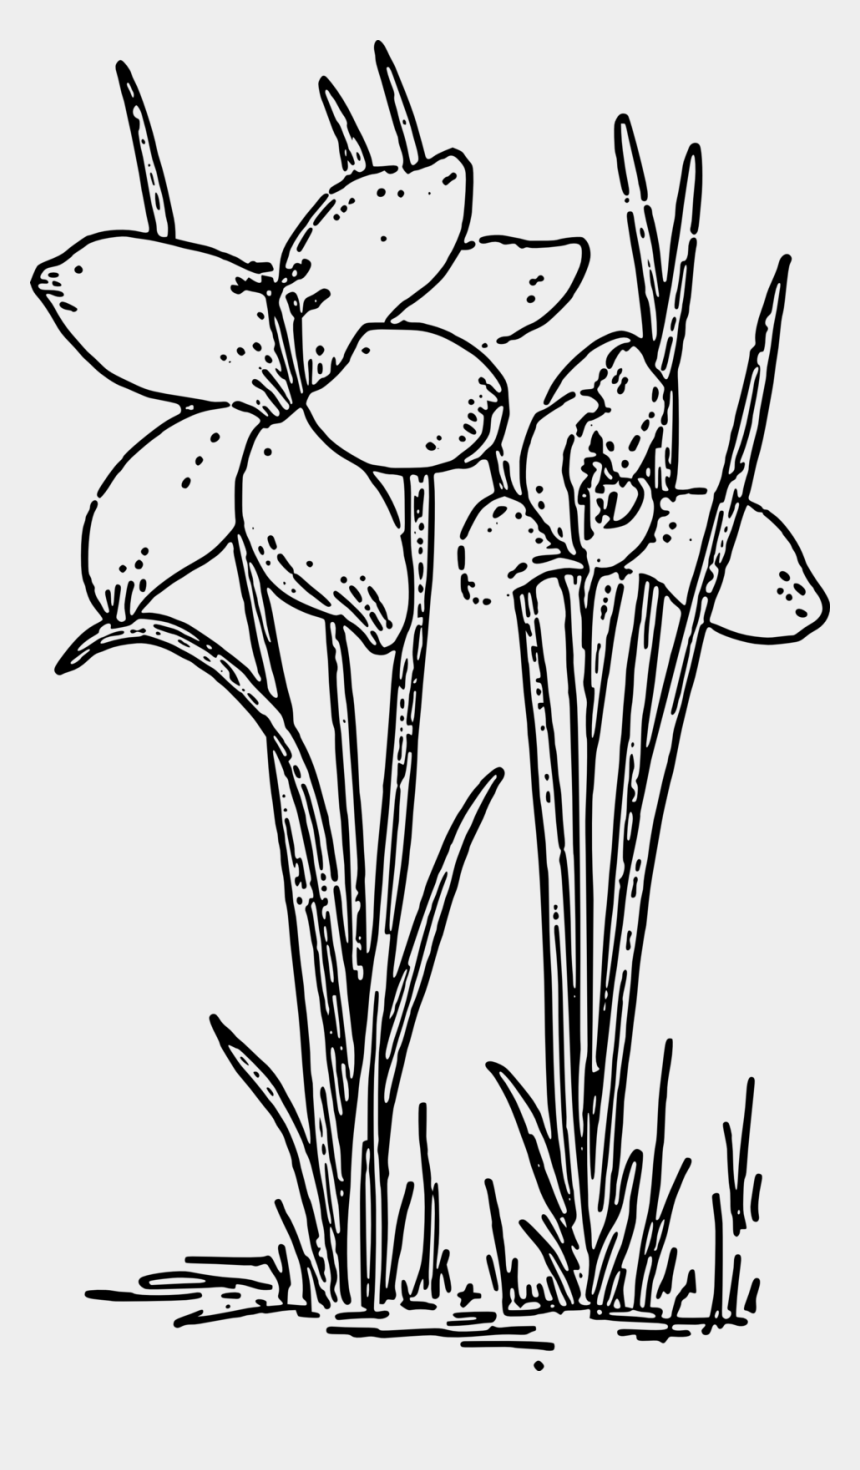 plants clipart black and white, Cartoons - Crocus 3 Coloring Book Colouring Black White Line Art - Rose Plants Black And White